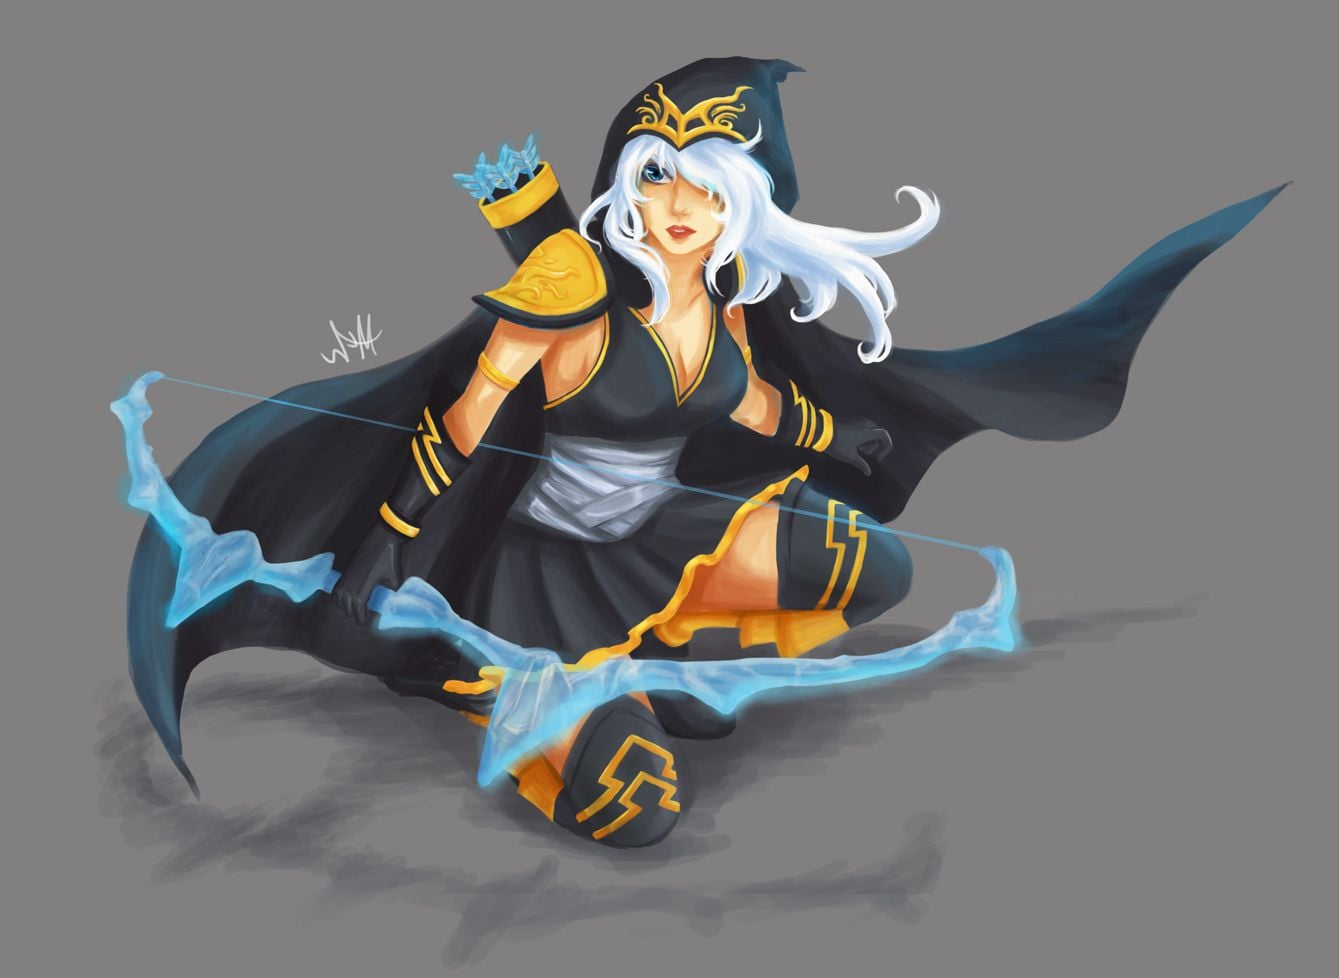 Hd Car Games Wallpapers 21 Ashe League Of Legends Wallpapers Hd Free Download